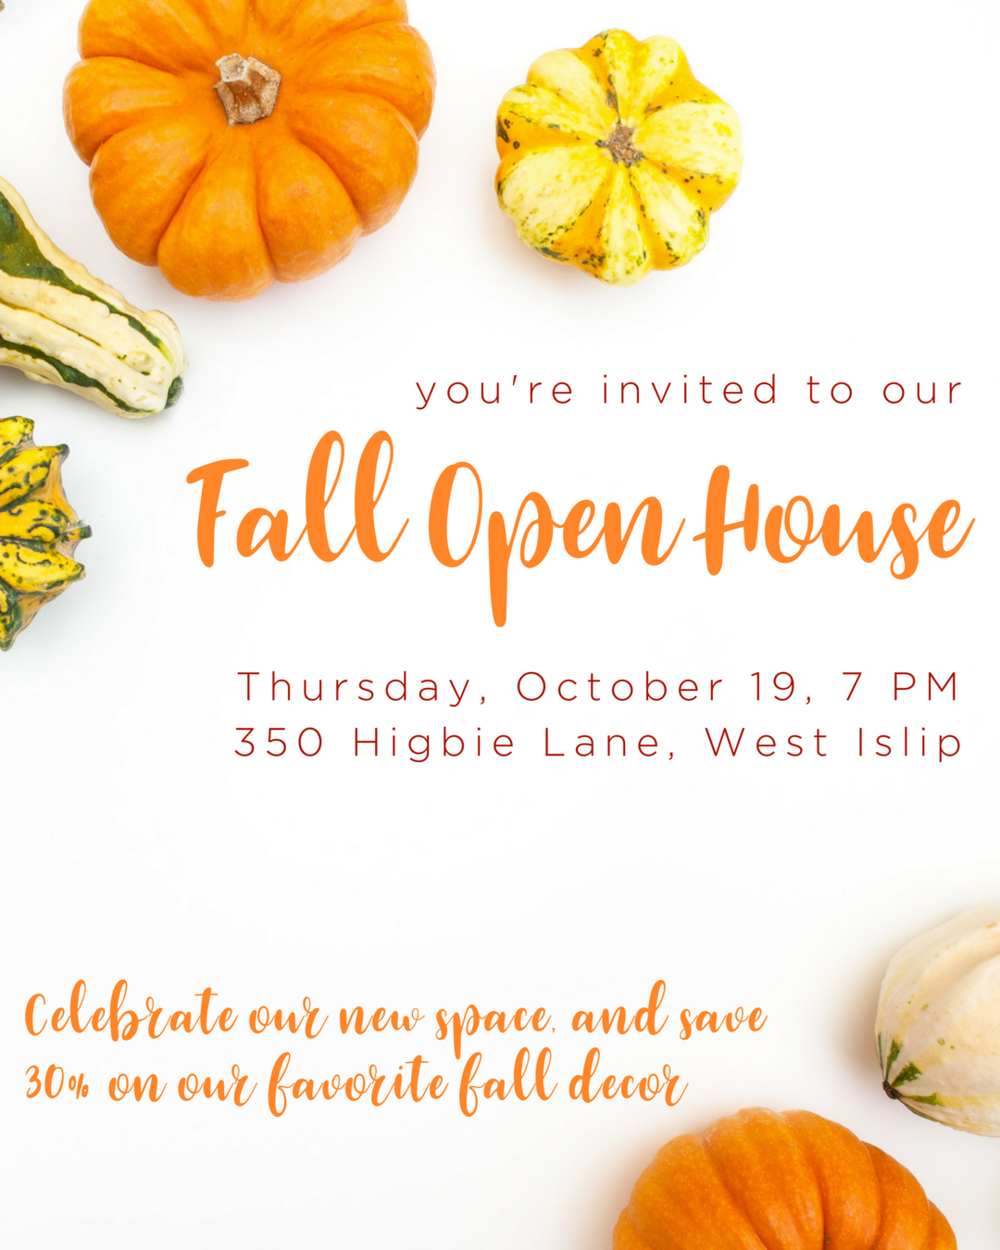 H2H Fall Open House Social Media.png